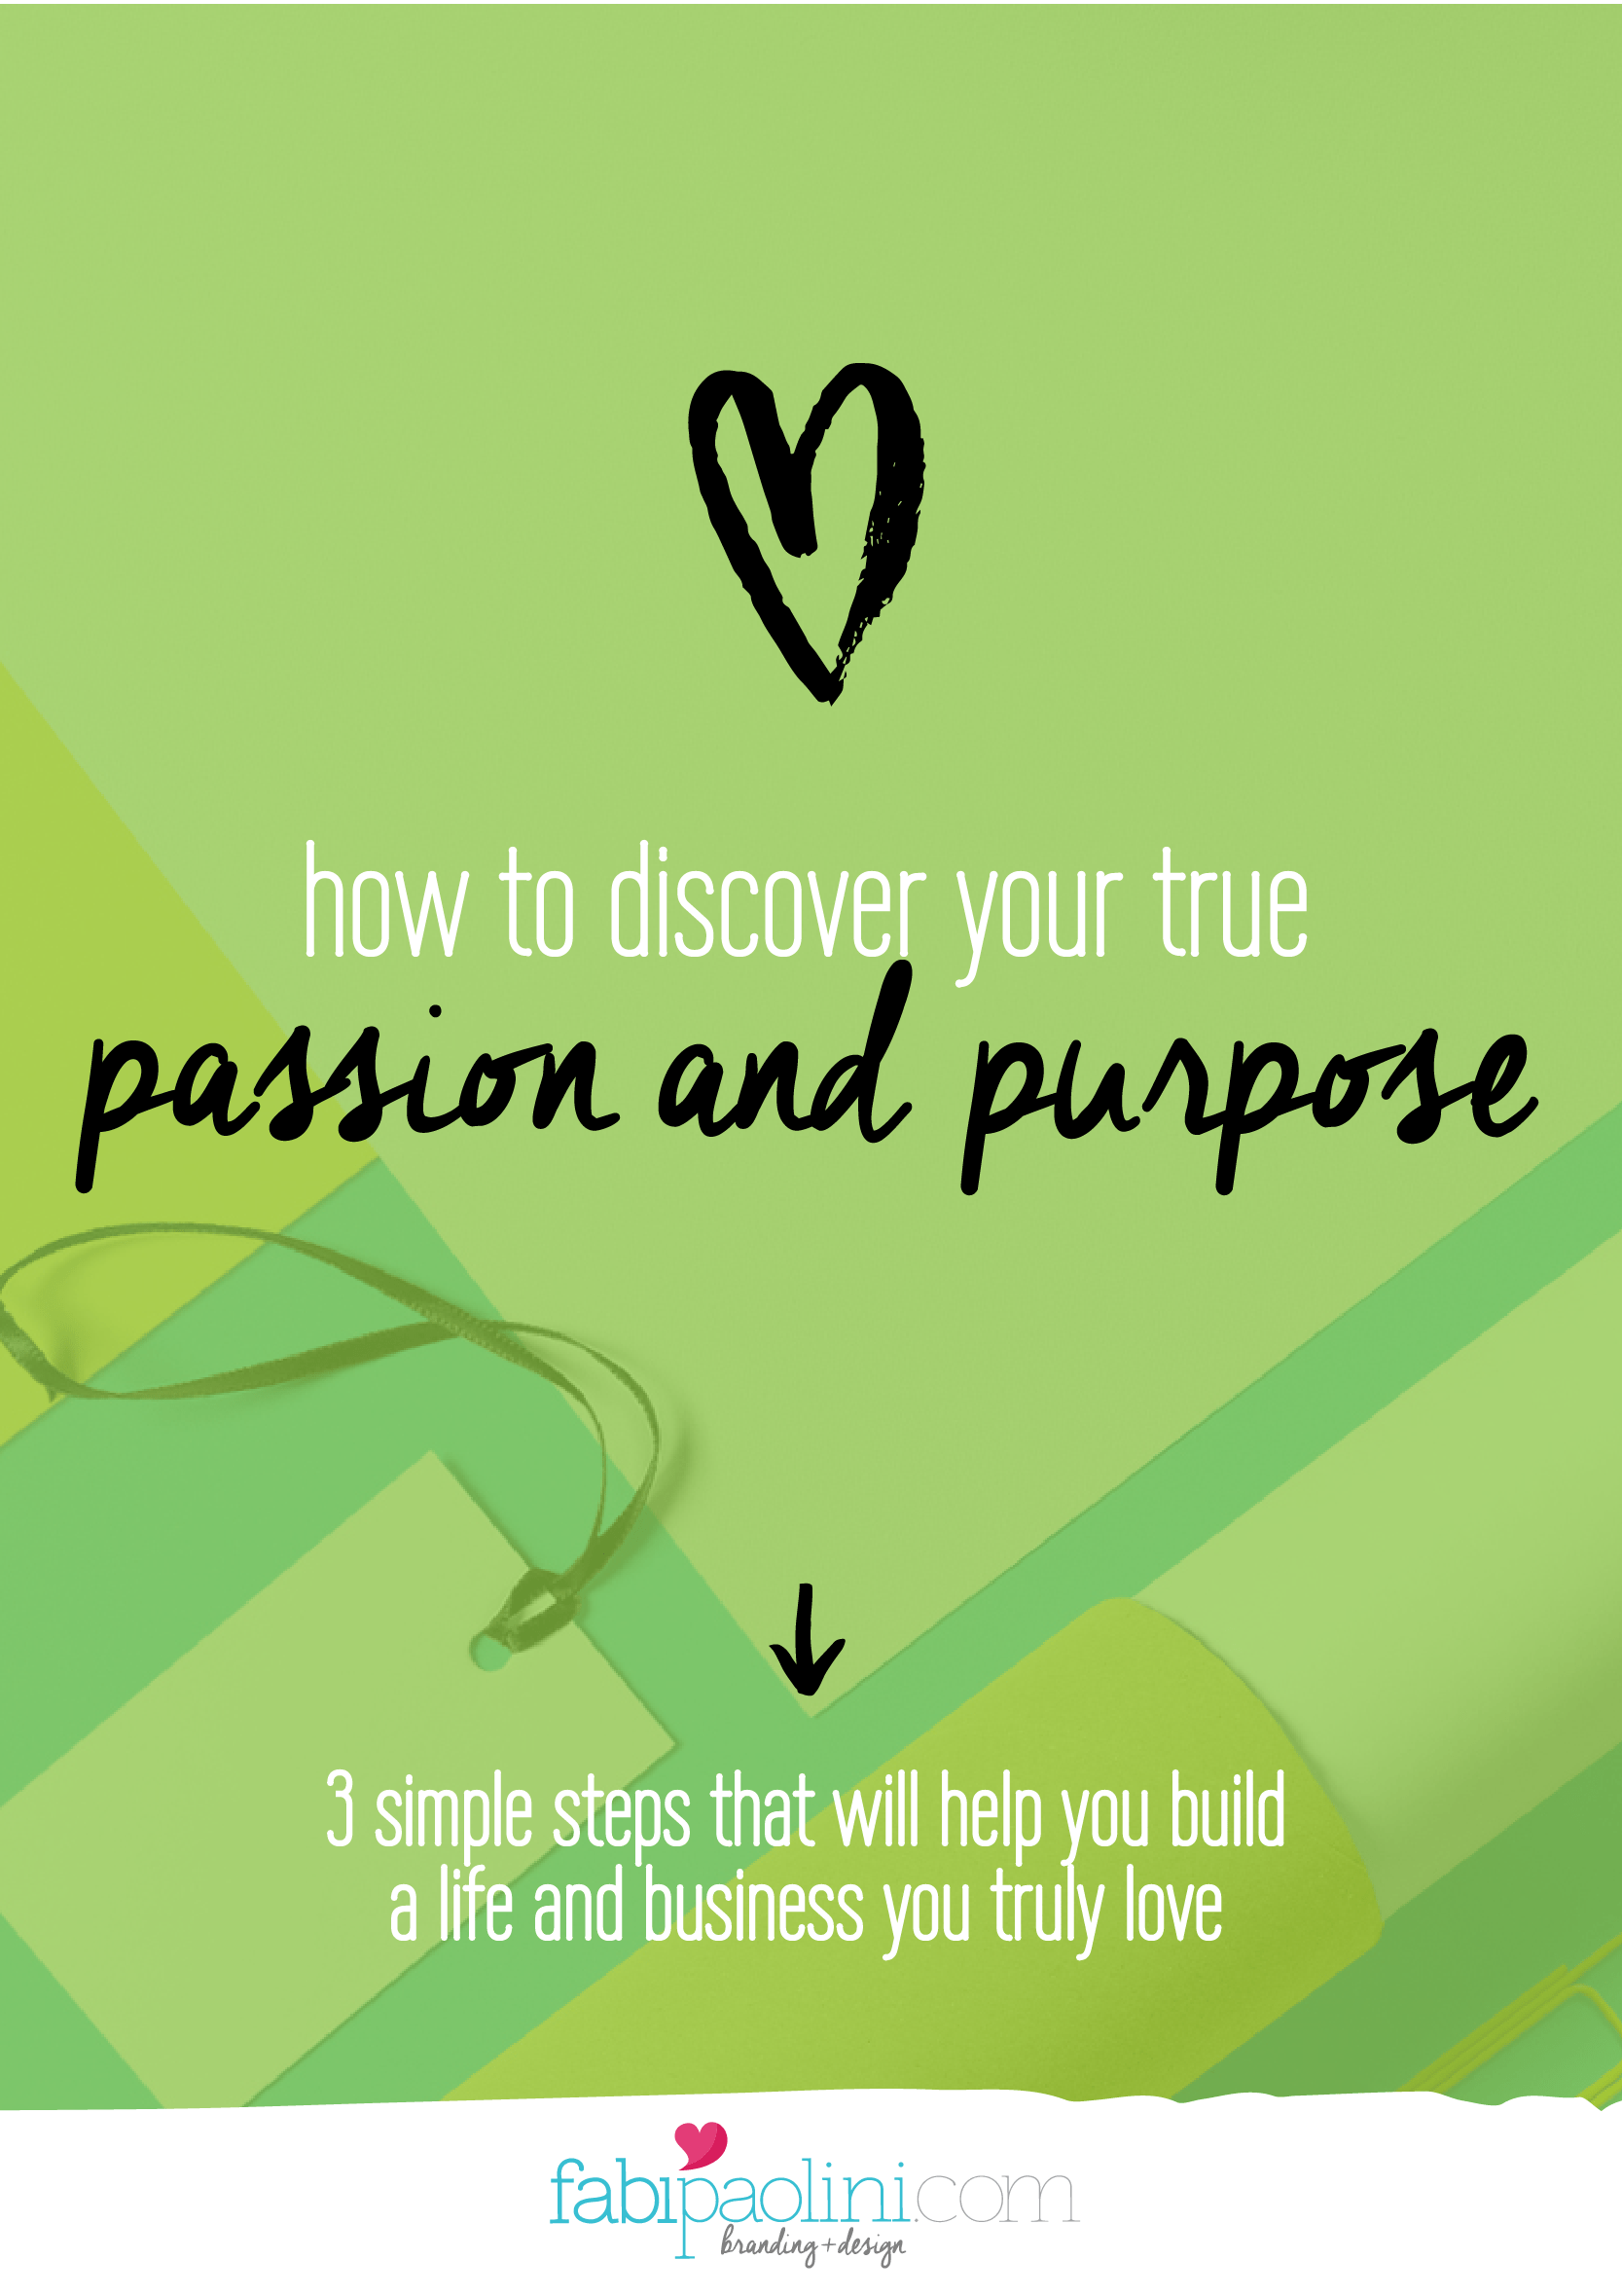 How to discover your true passion and purpose fabi paolini how to discover your true passion and purpose for your business and life branding and ccuart Choice Image